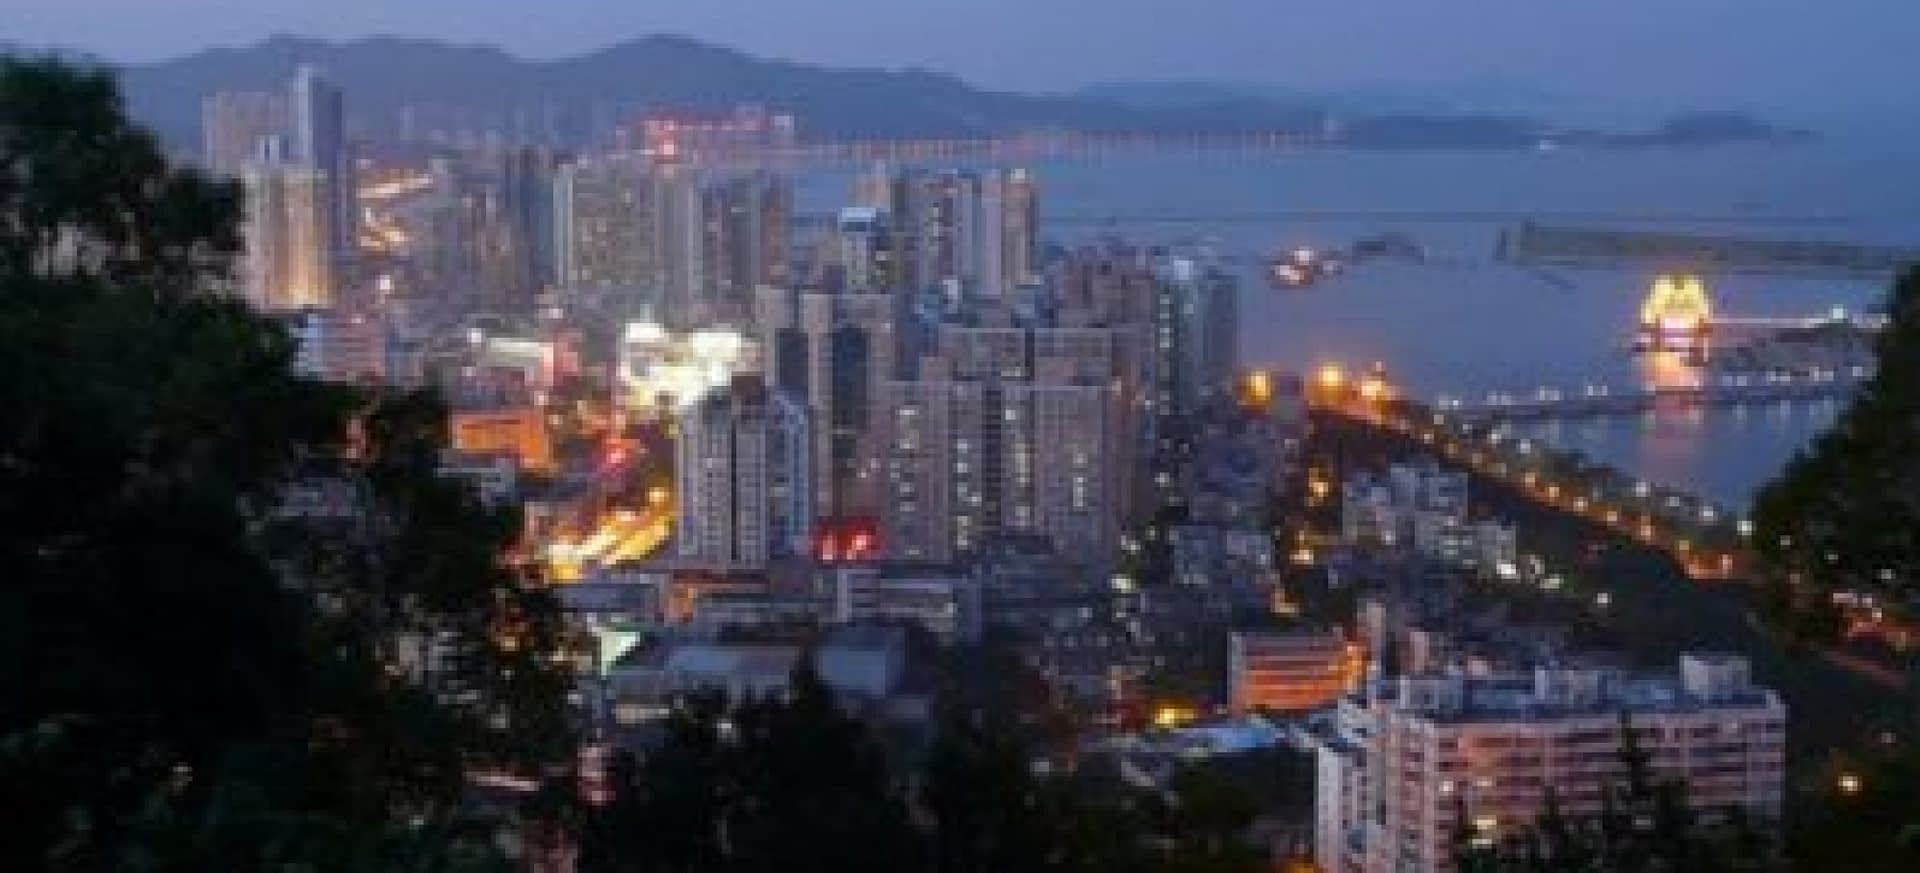 Zhuhai_skyline_at_night